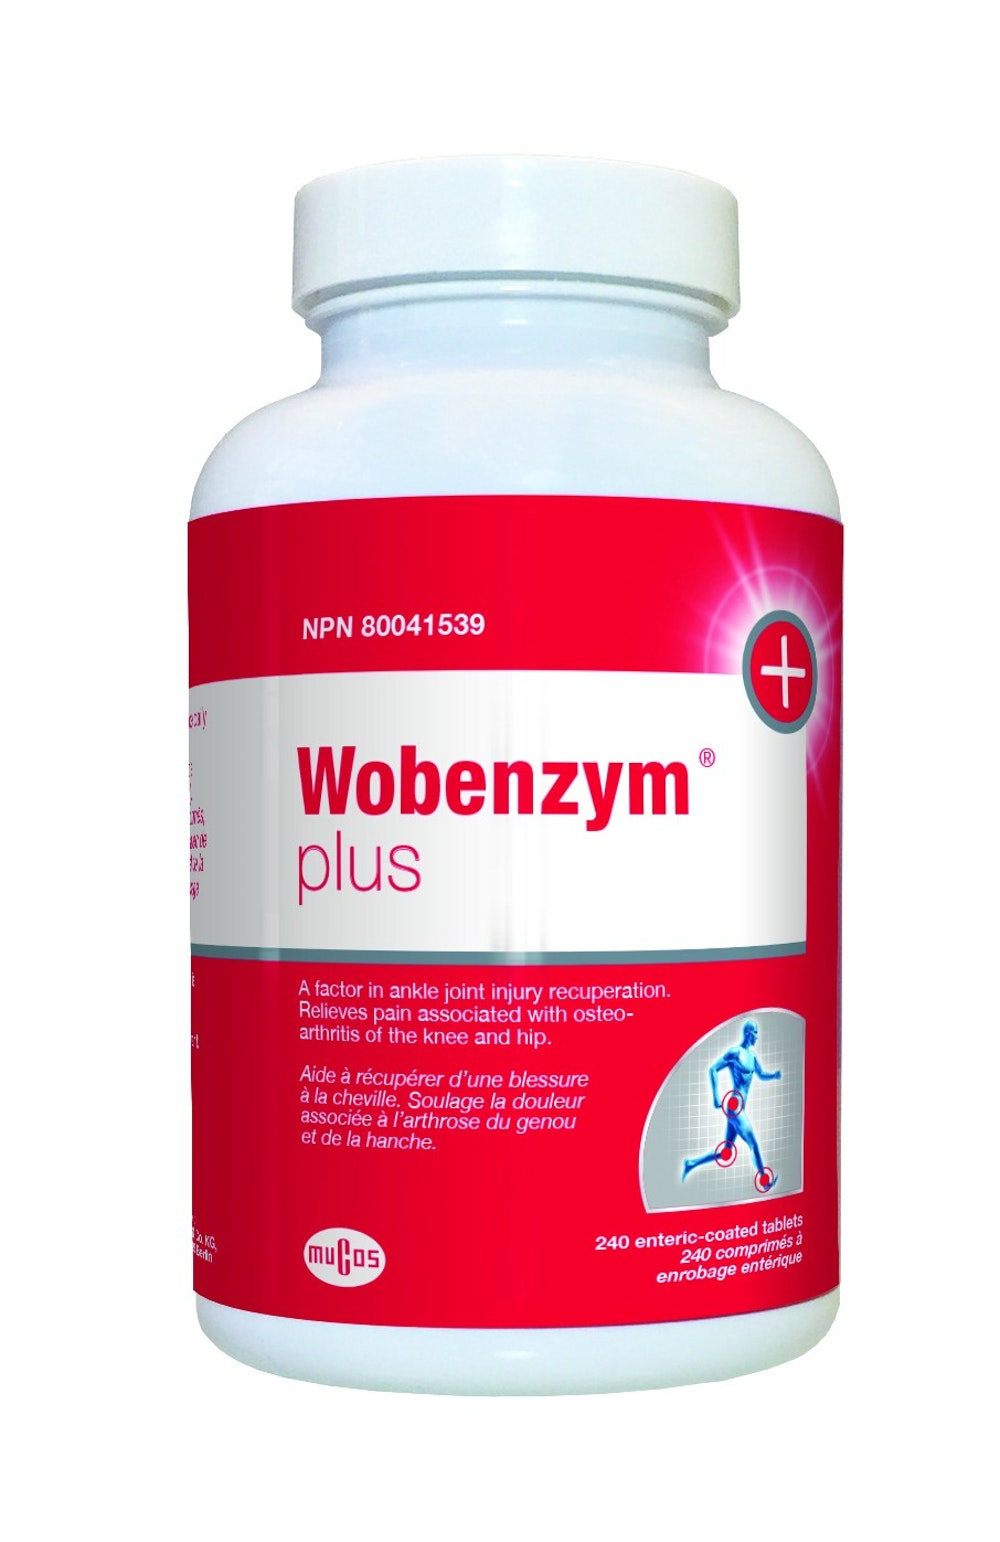 Wobenzyn Plus The Parapharmacy